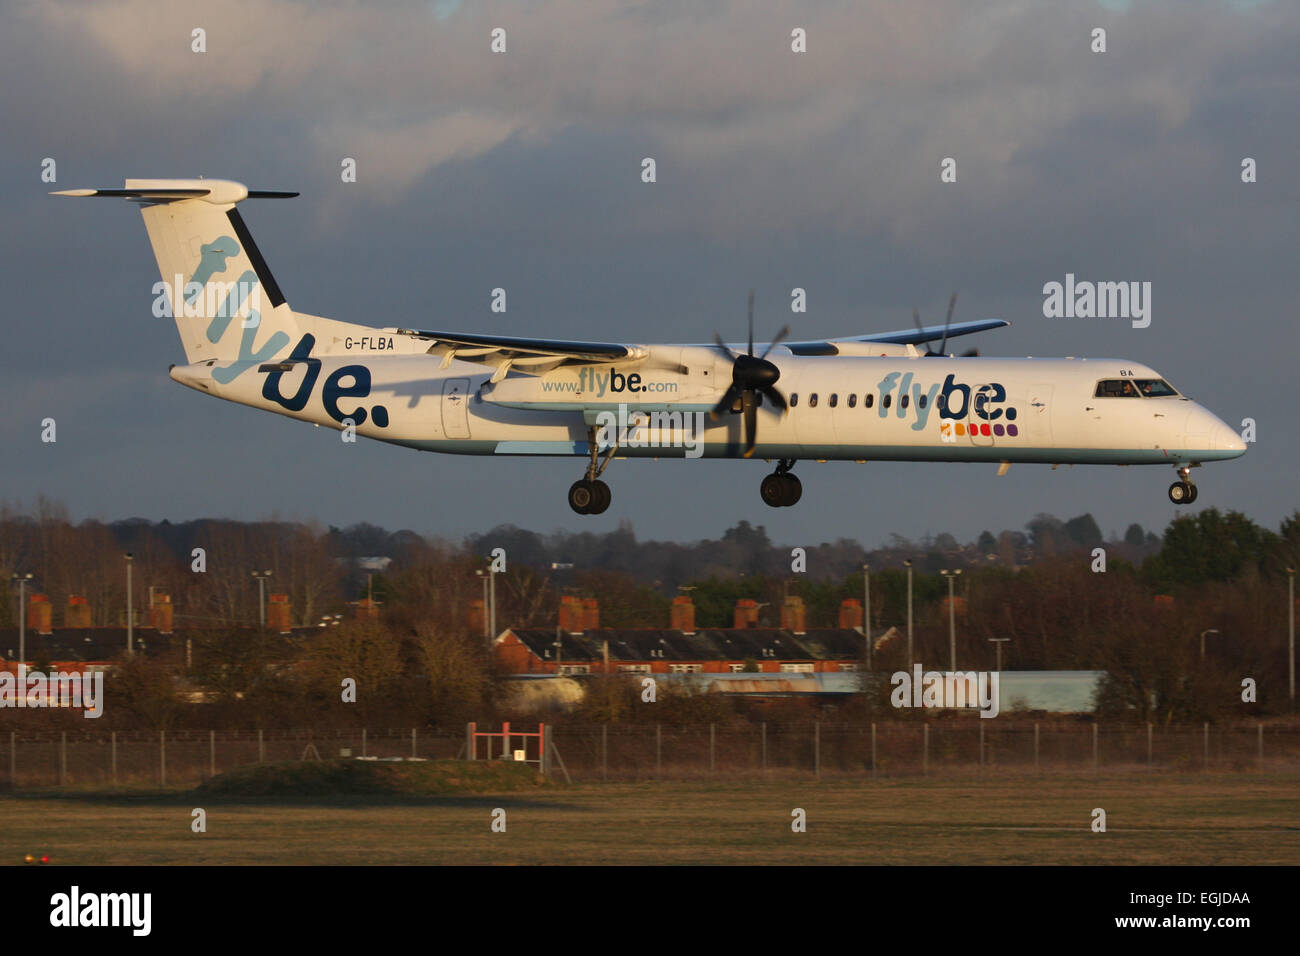 flybe DHC DASH 400 Stock Photo